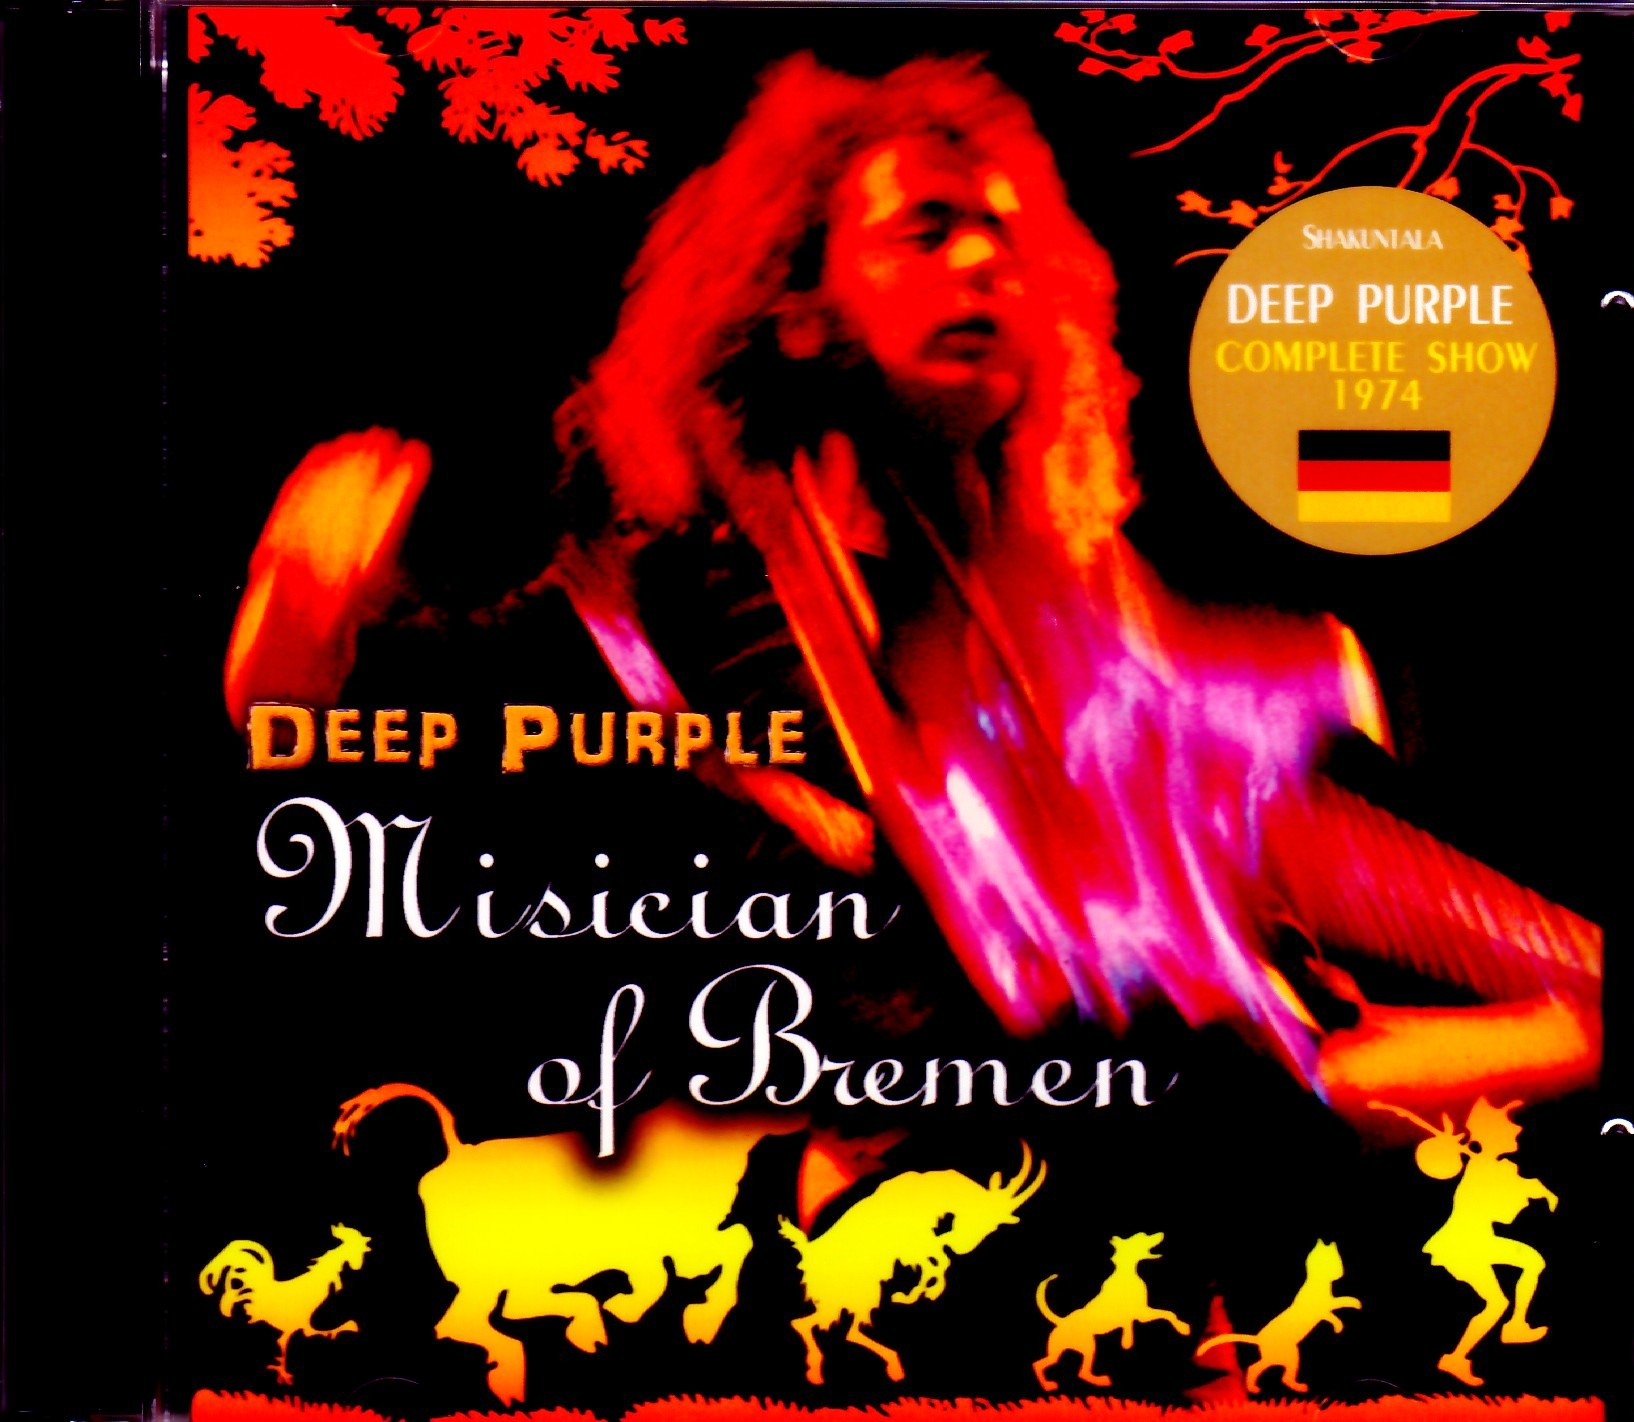 Deep Purple ディープ・パープル/Germany 1974 Complete